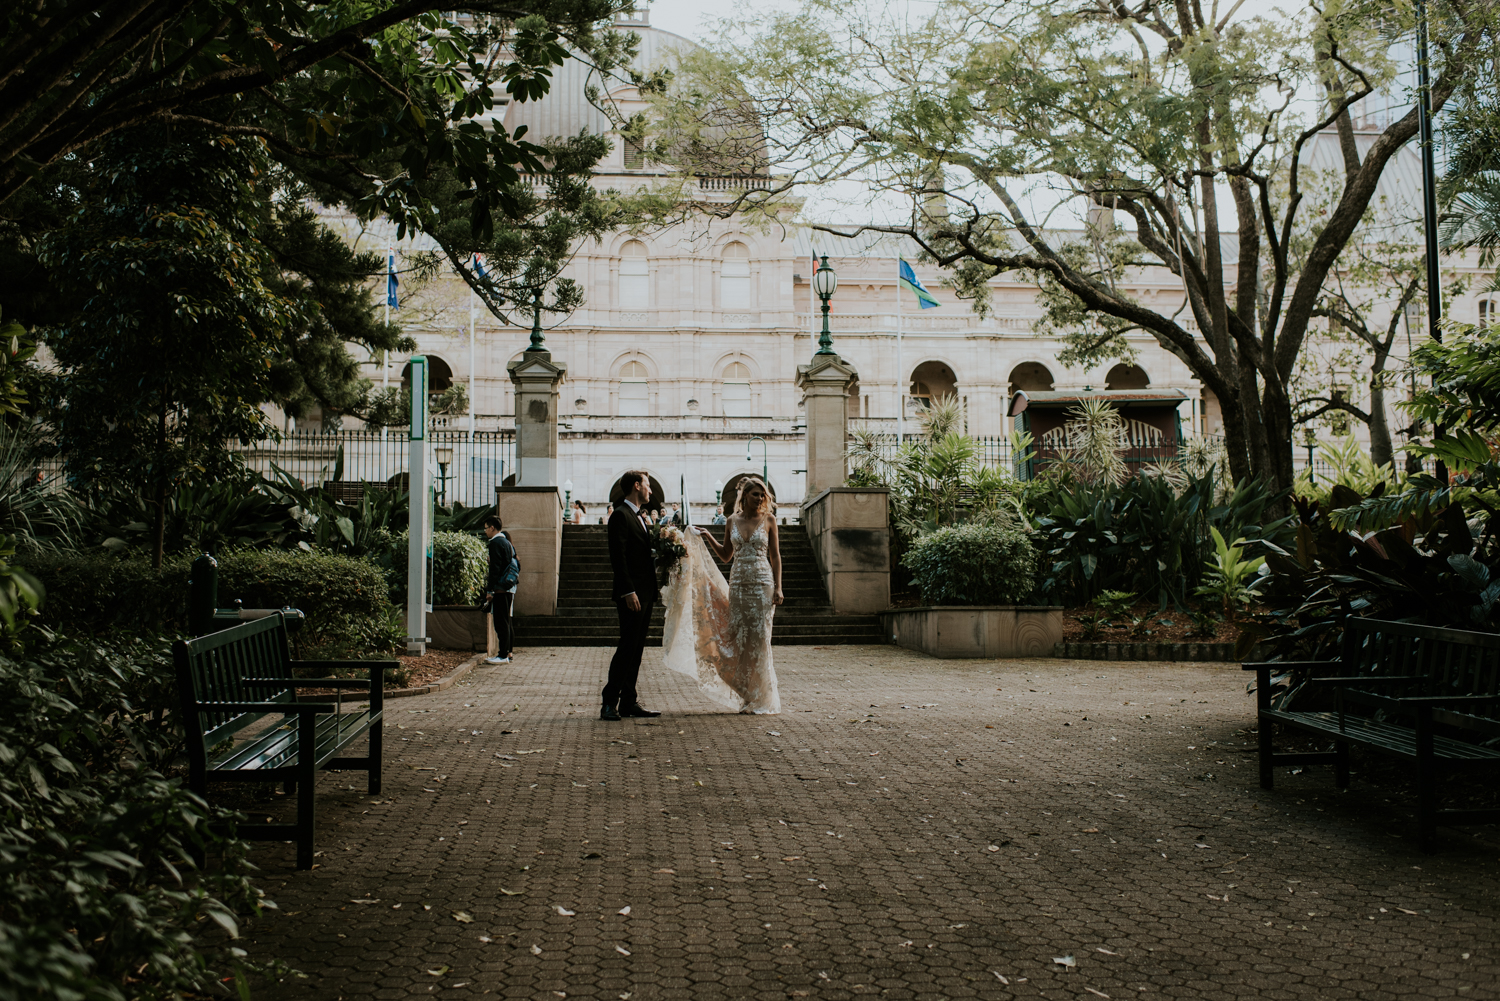 Brisbane Wedding Photographer | Engagement-Elopement Photography | Factory51-City Botantic Gardens Wedding-52.jpg